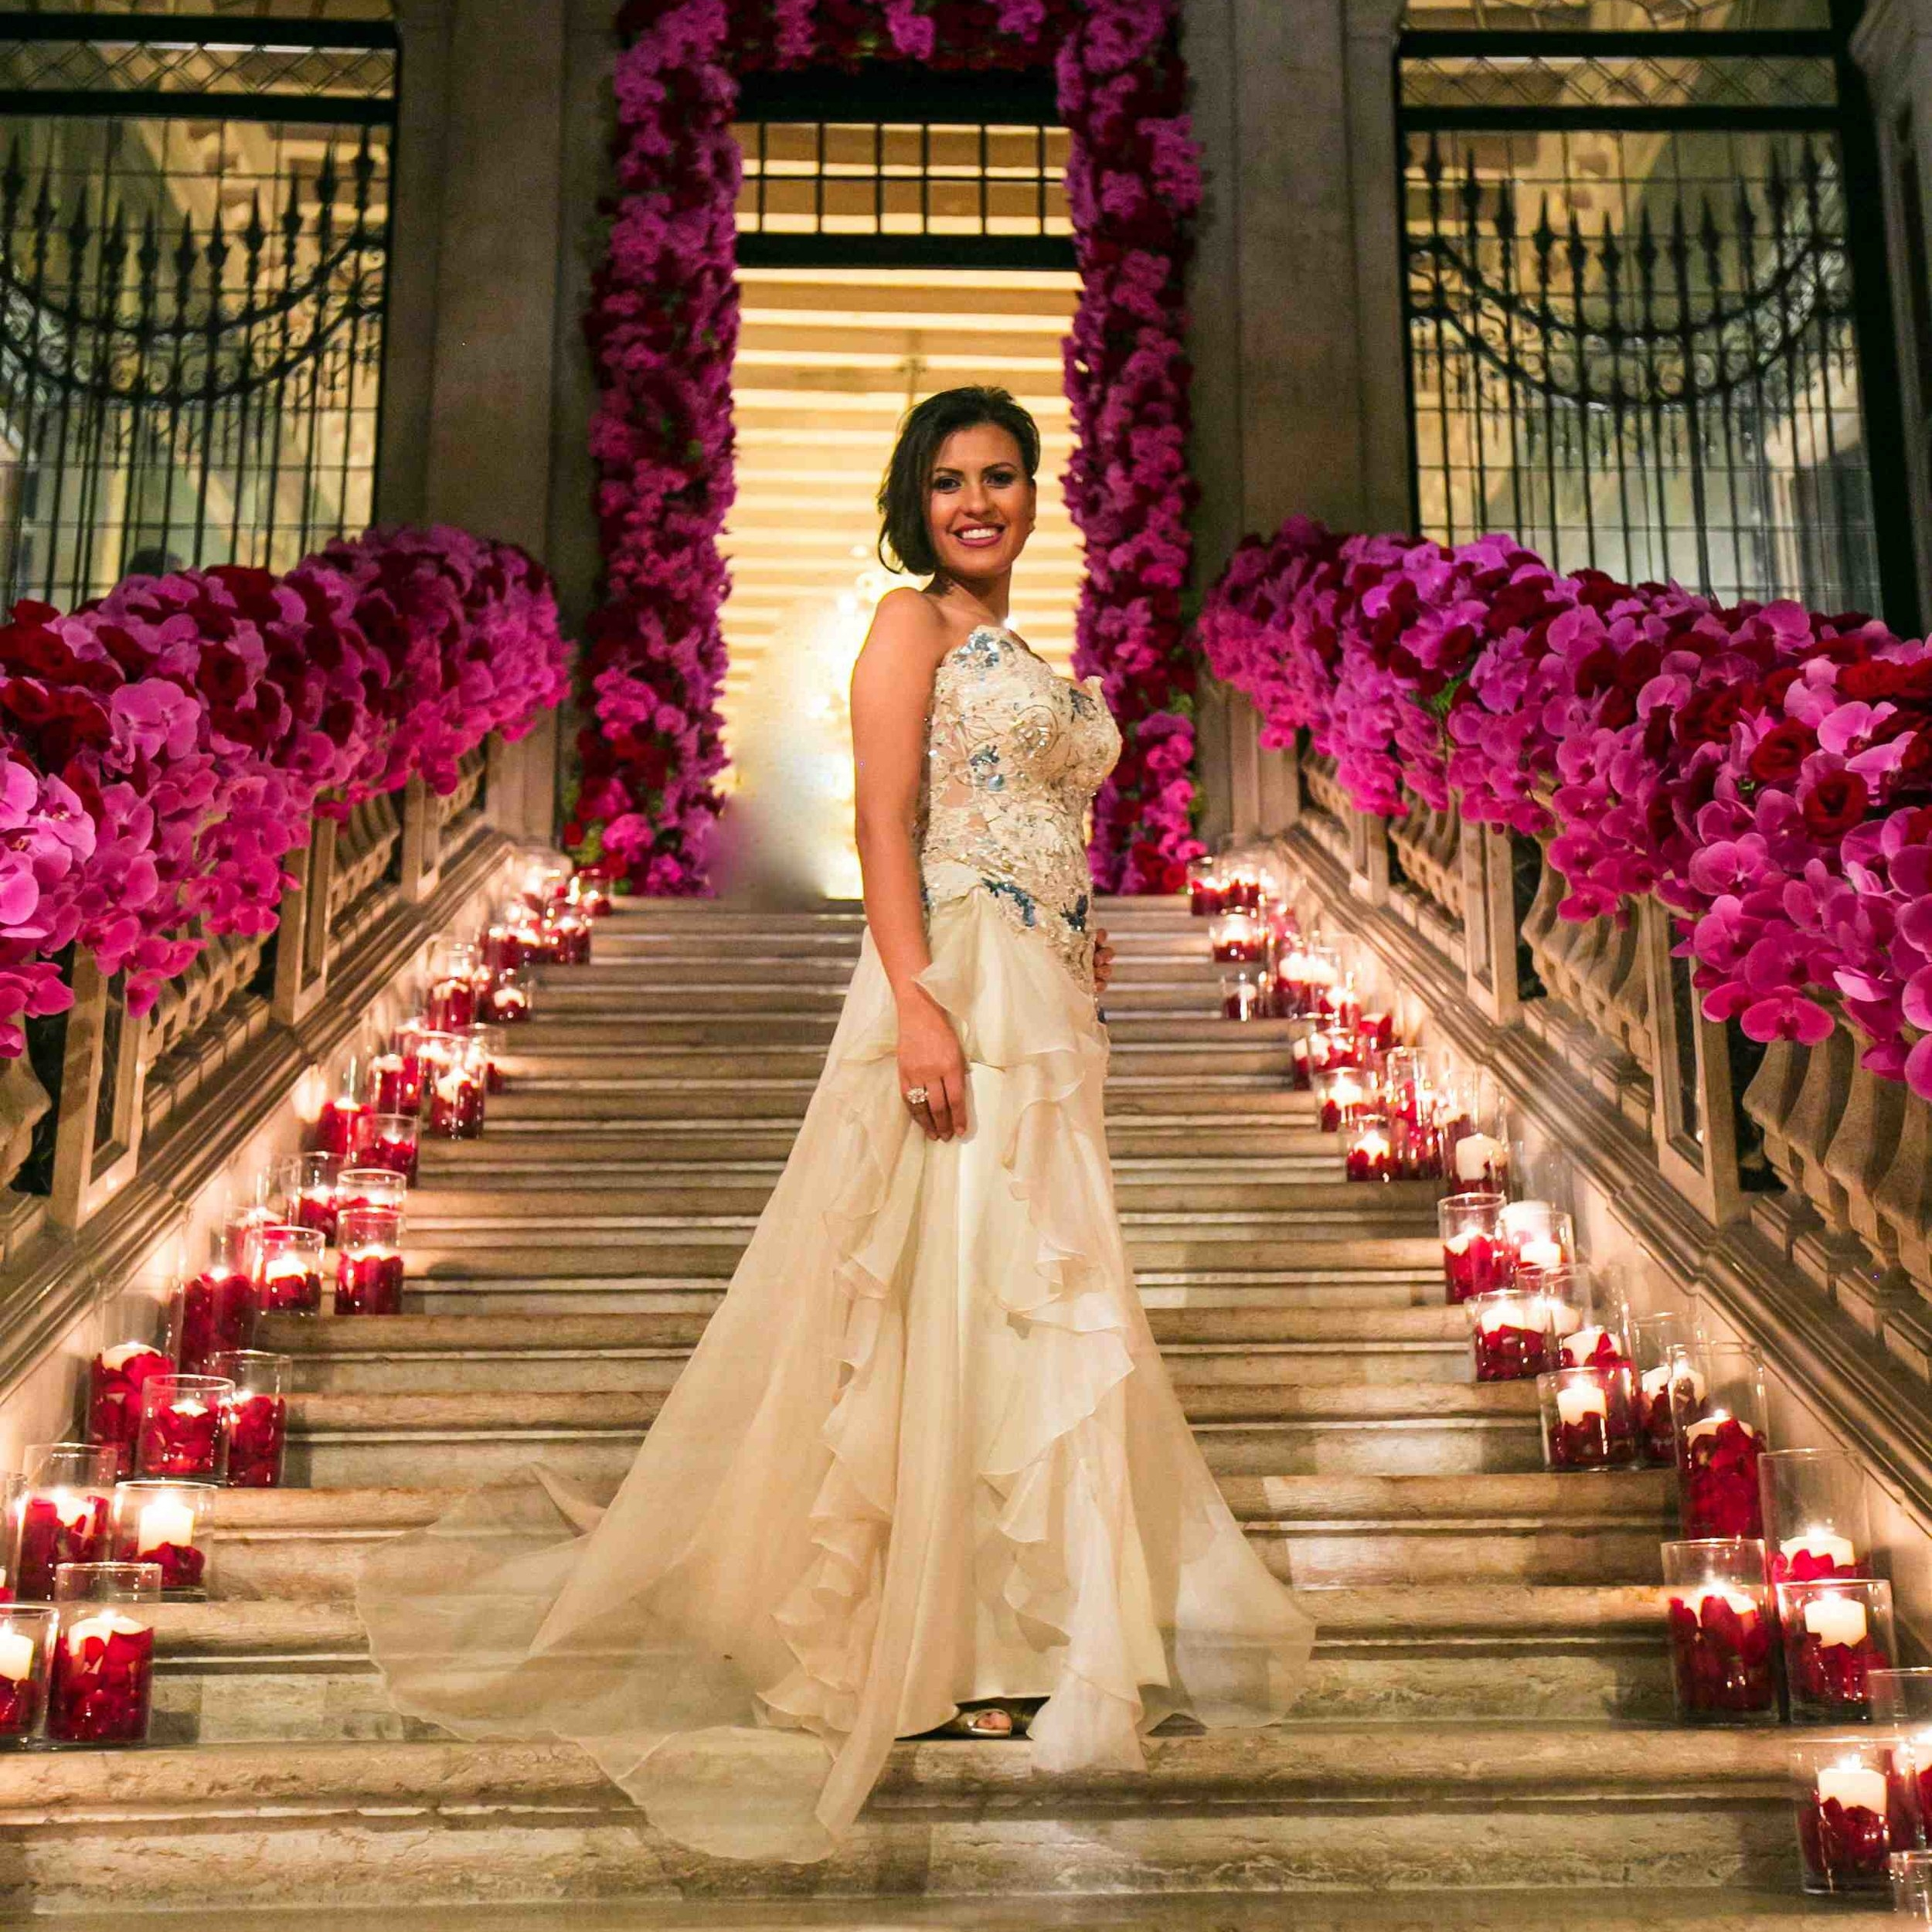 nadia_duran_destination_weddings_venice.jpg